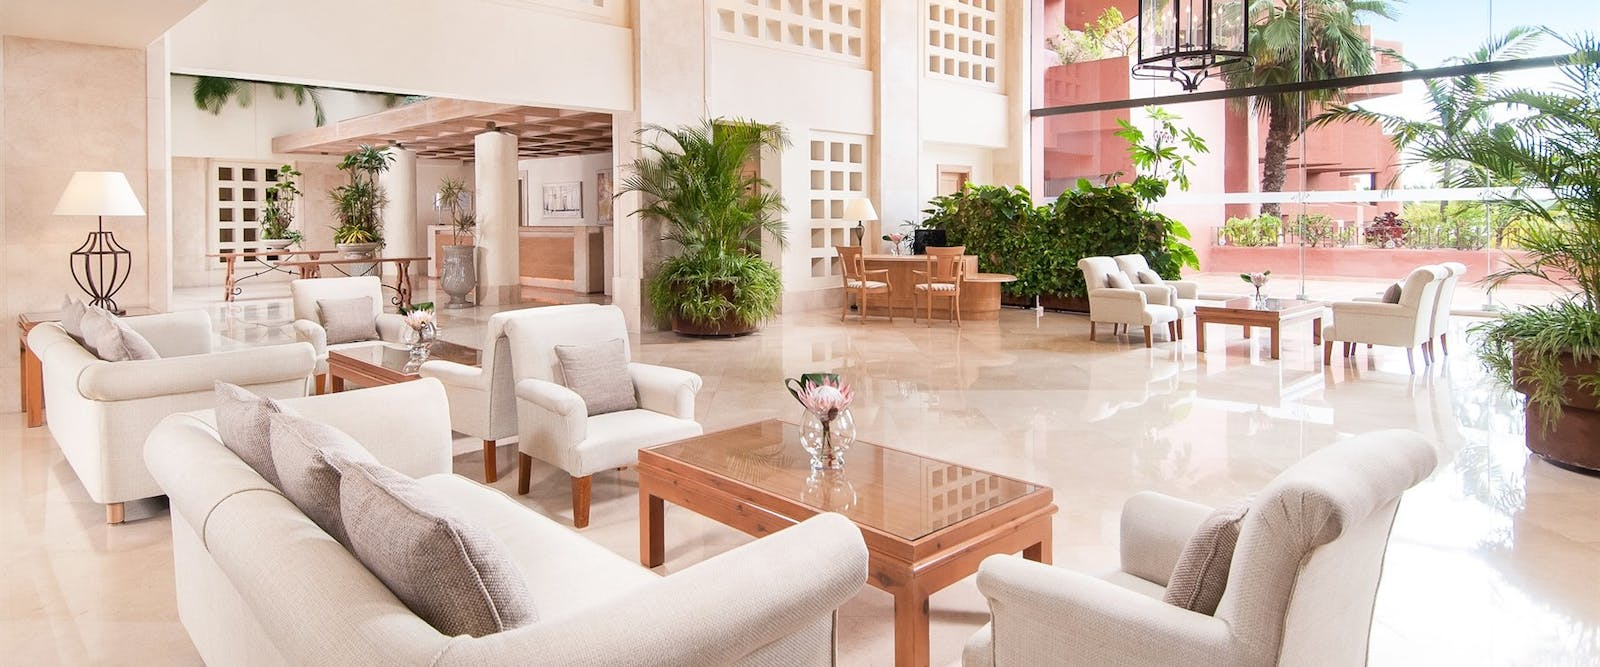 Lobby at Sheraton La Caleta Resort, Tenerife